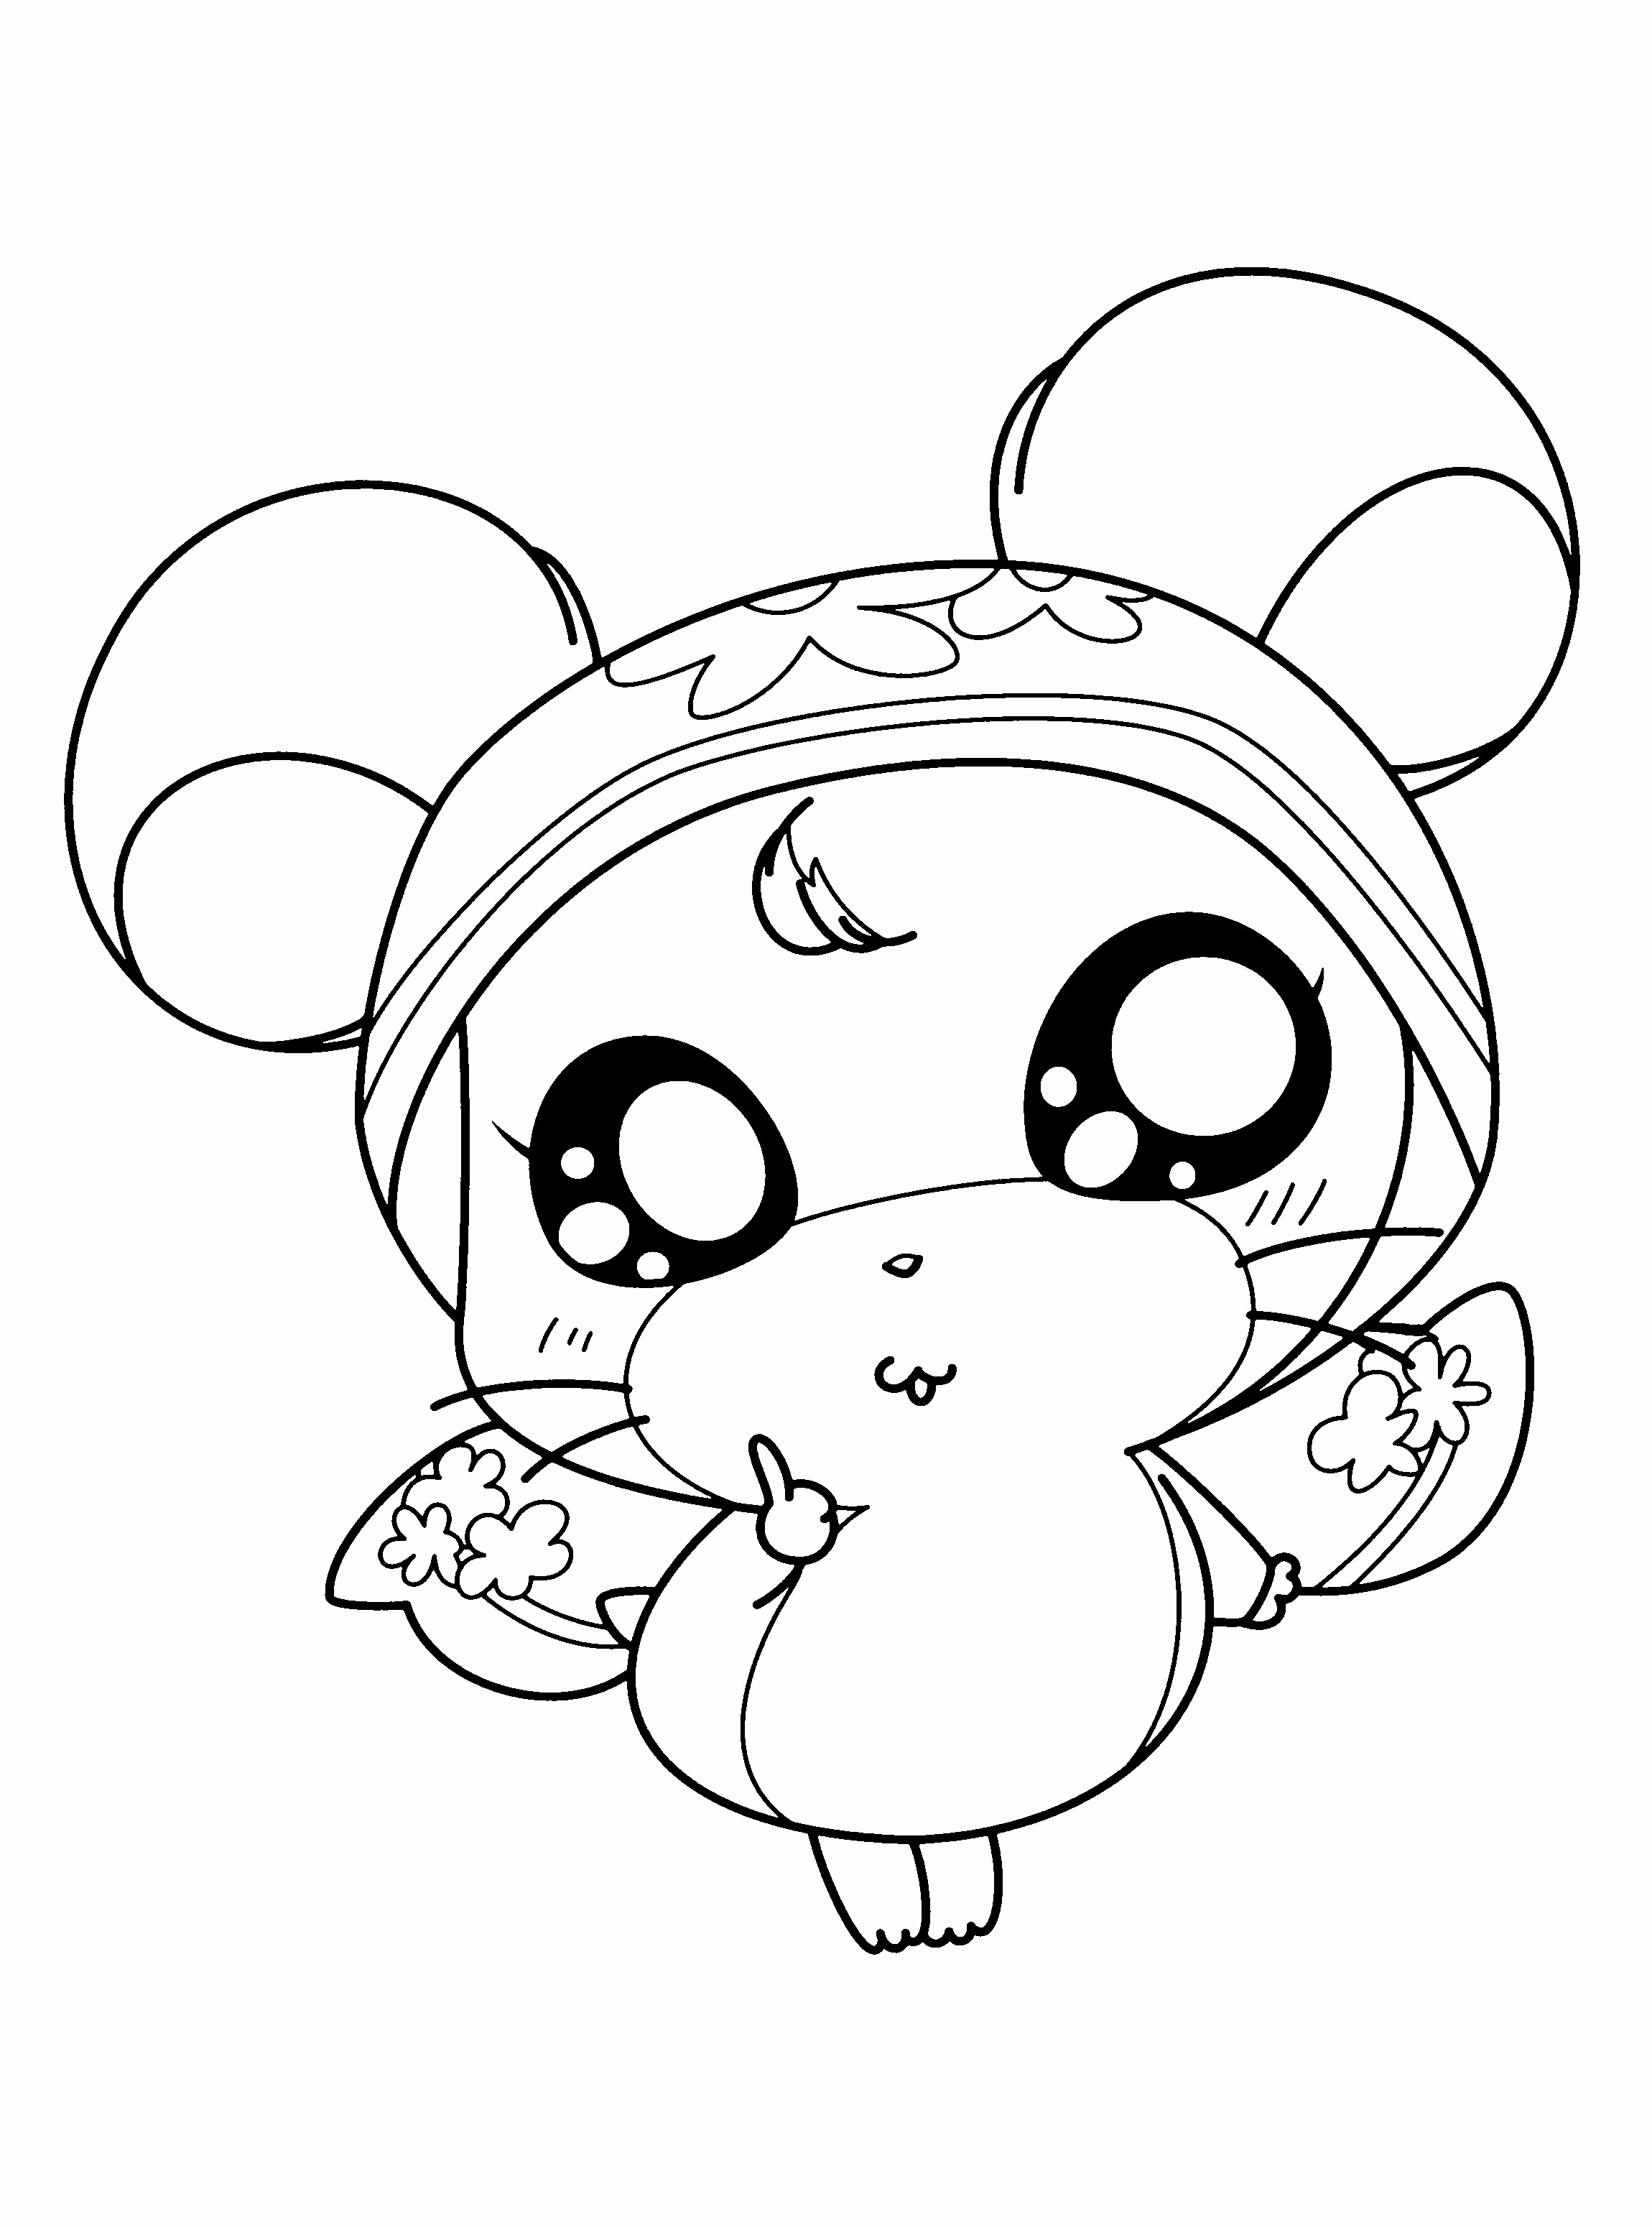 Overwatch Coloring Pages  Download 17f - Free For kids